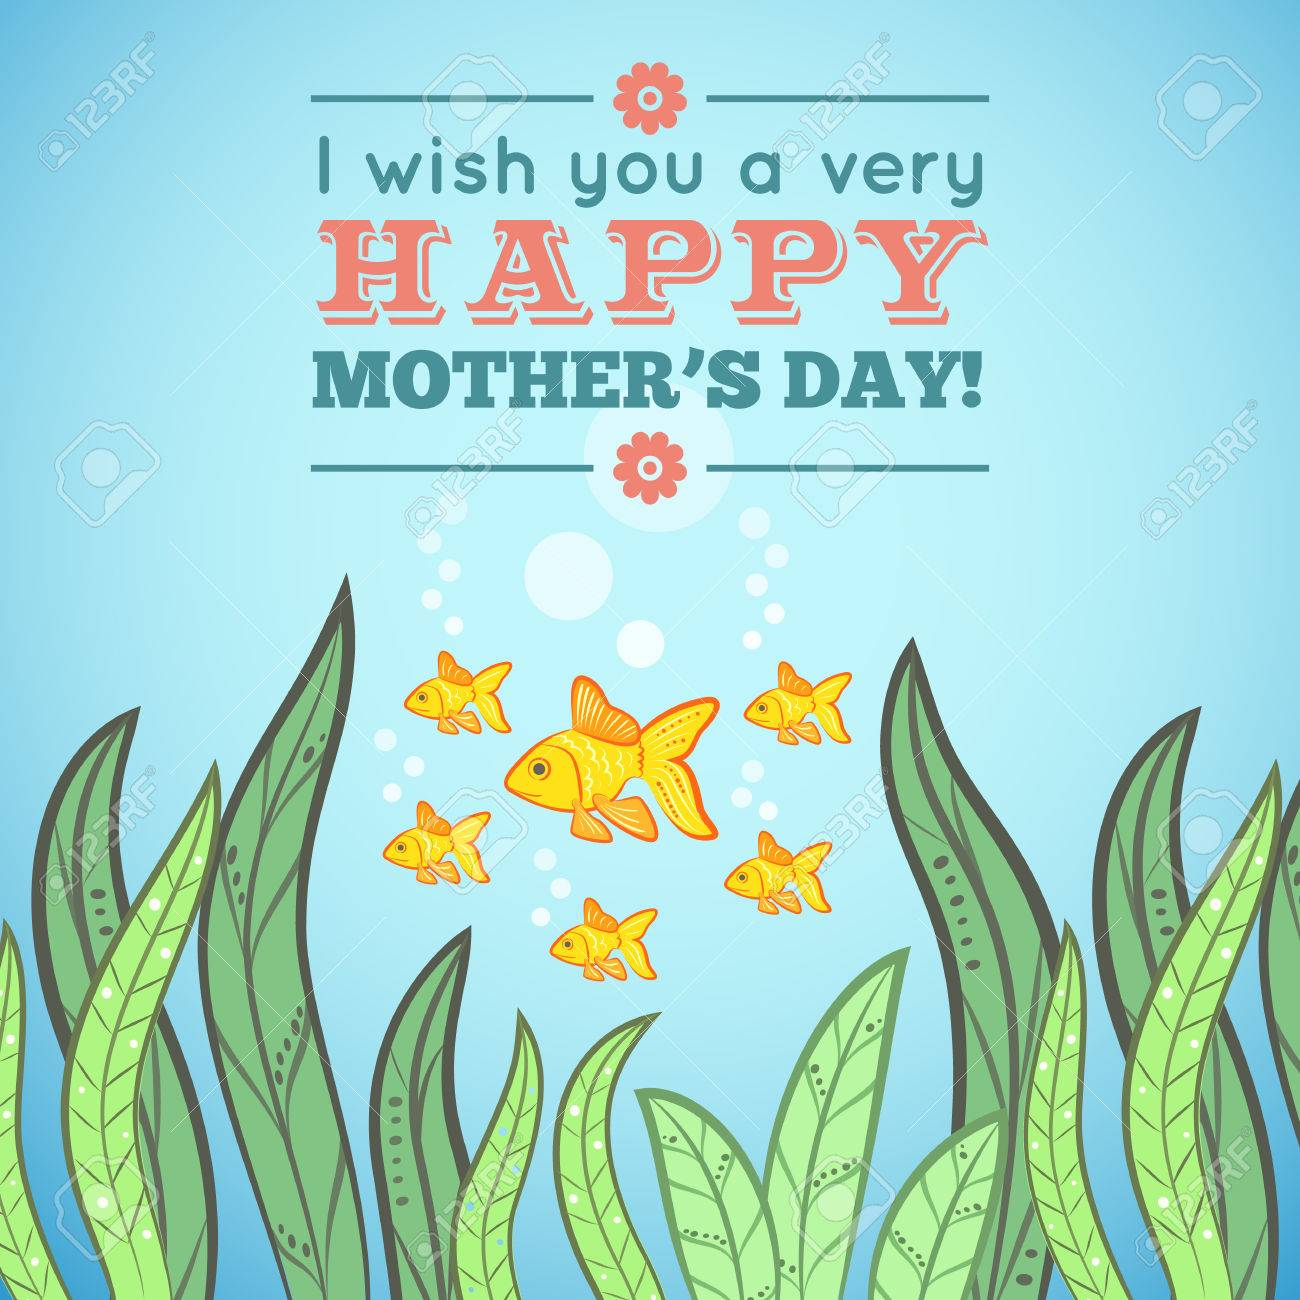 Greeting card design with fish for mother day illustration dor greeting card design with fish for mother day illustration dor funny holiday design blue m4hsunfo